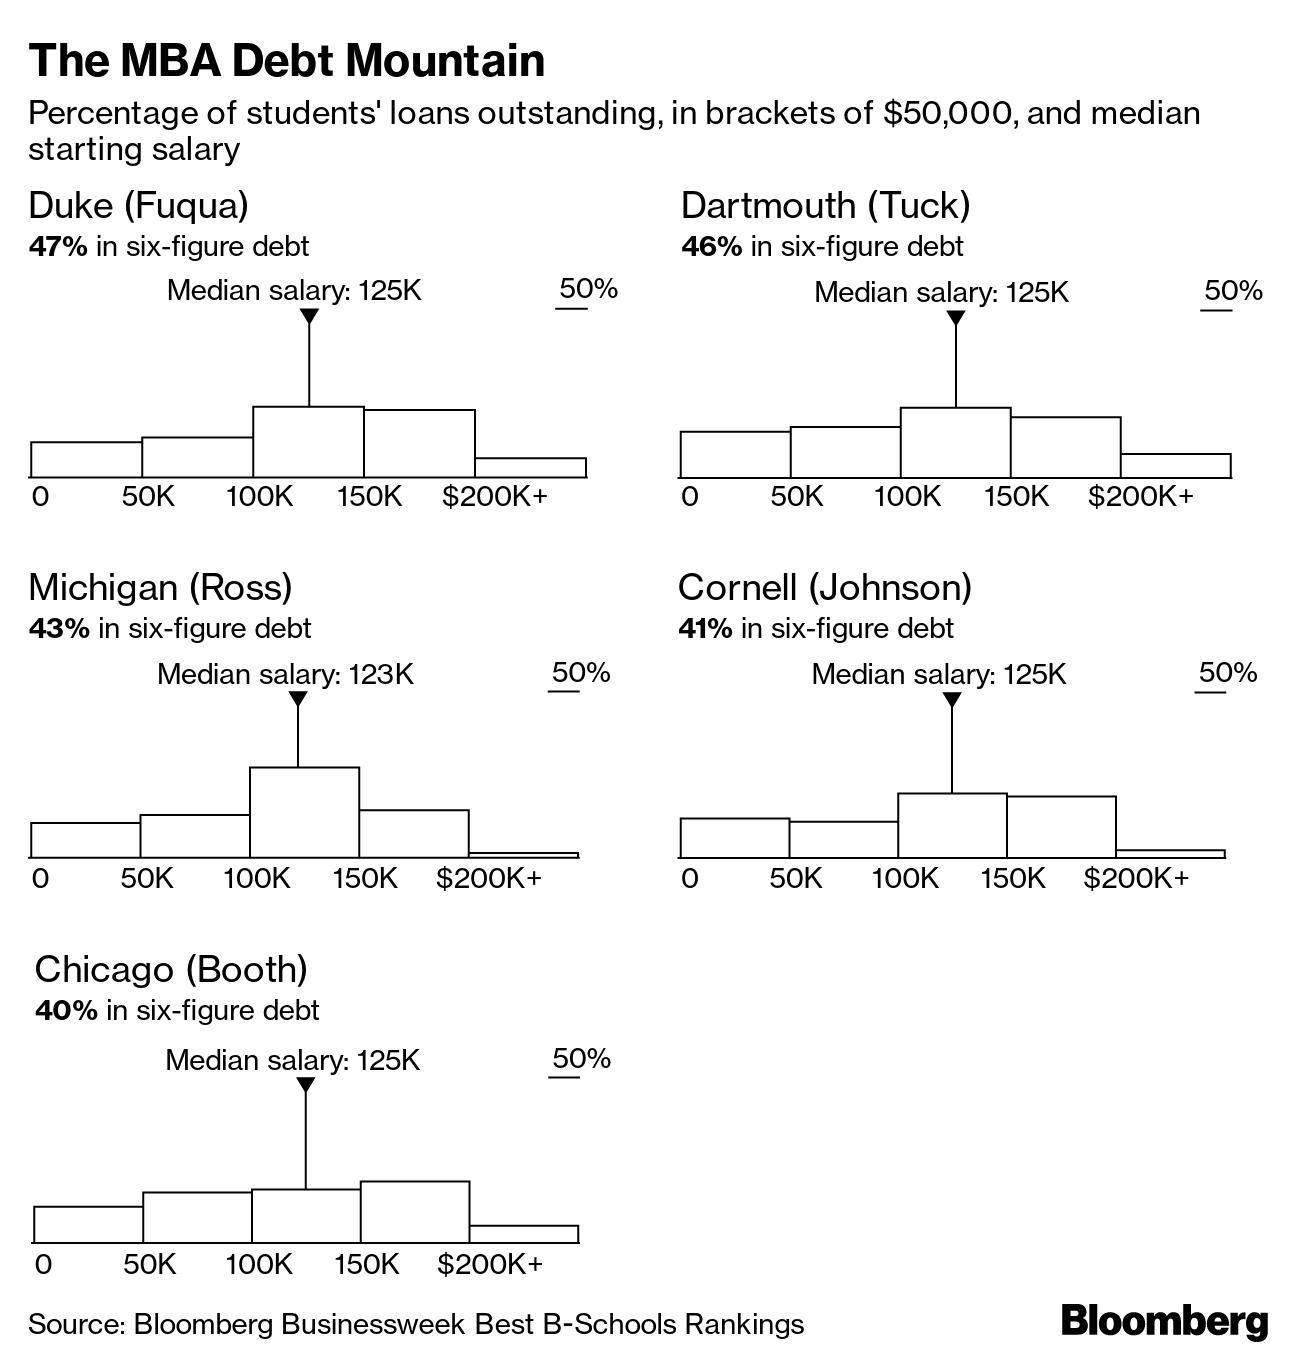 Top U S  B-School Students Pile on Debt to Earn MBAs - Bloomberg